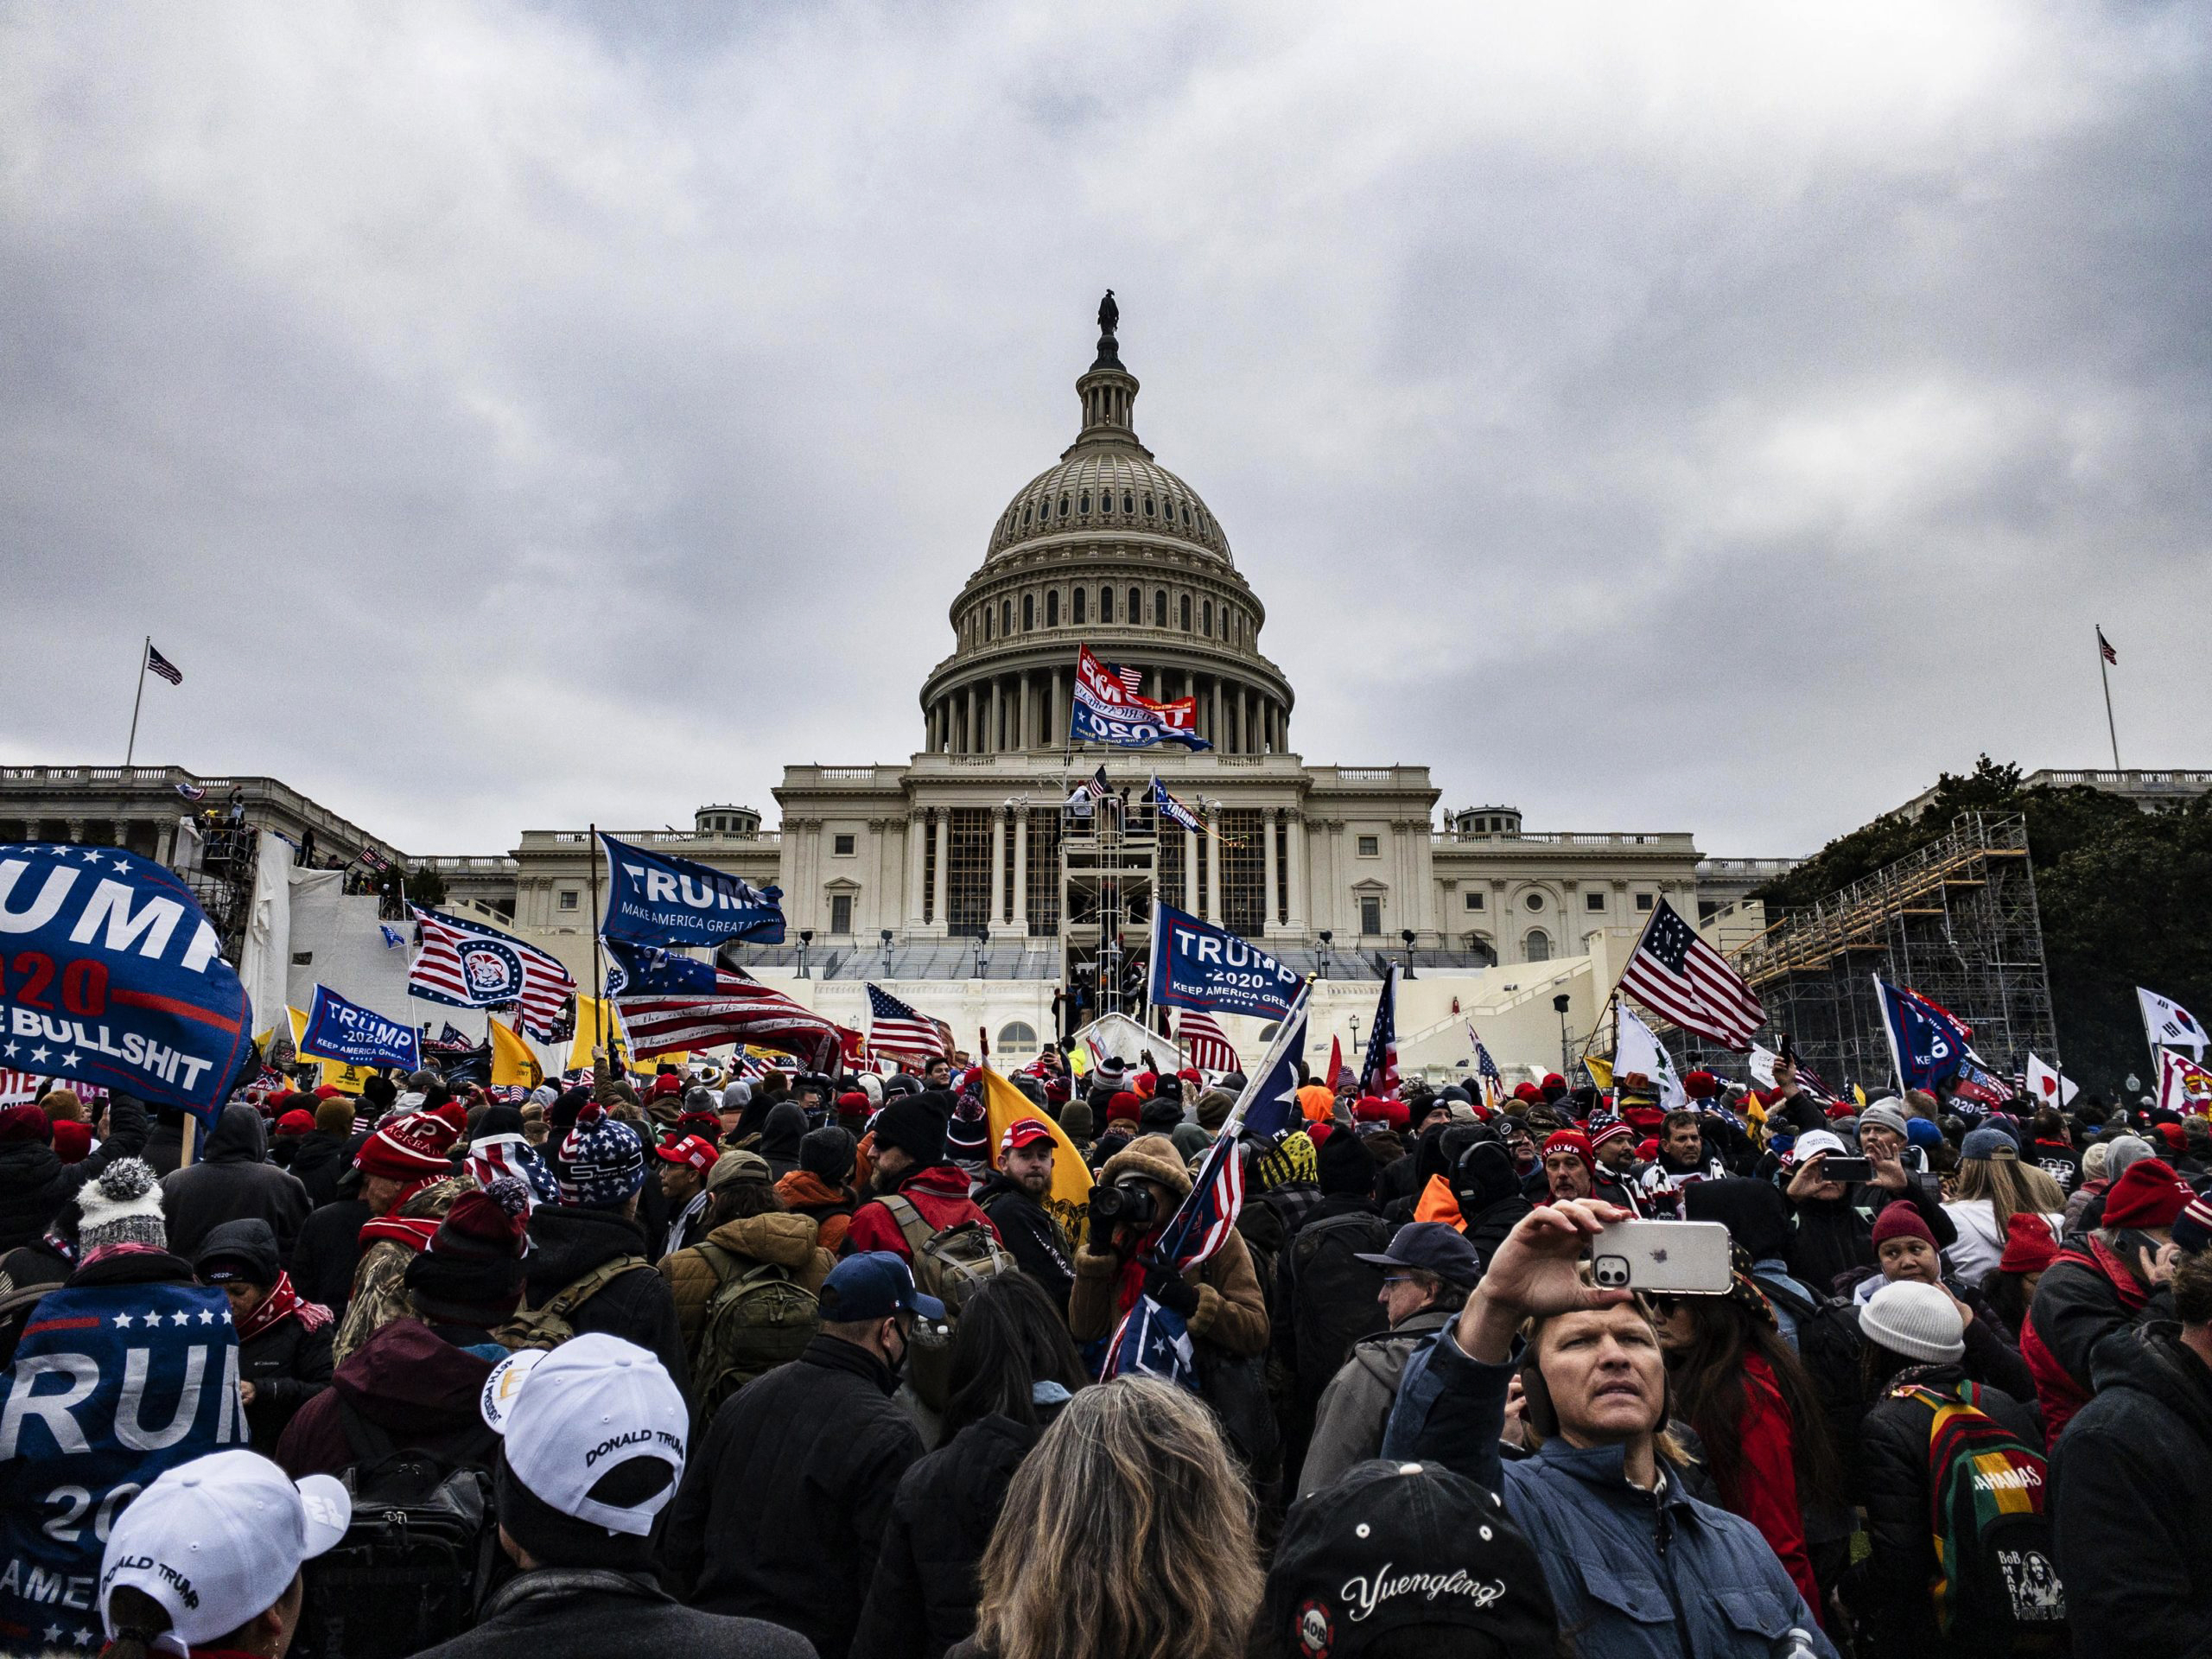 Trump supporters riot in the Capitol, Washington, D.C., January 6 2021